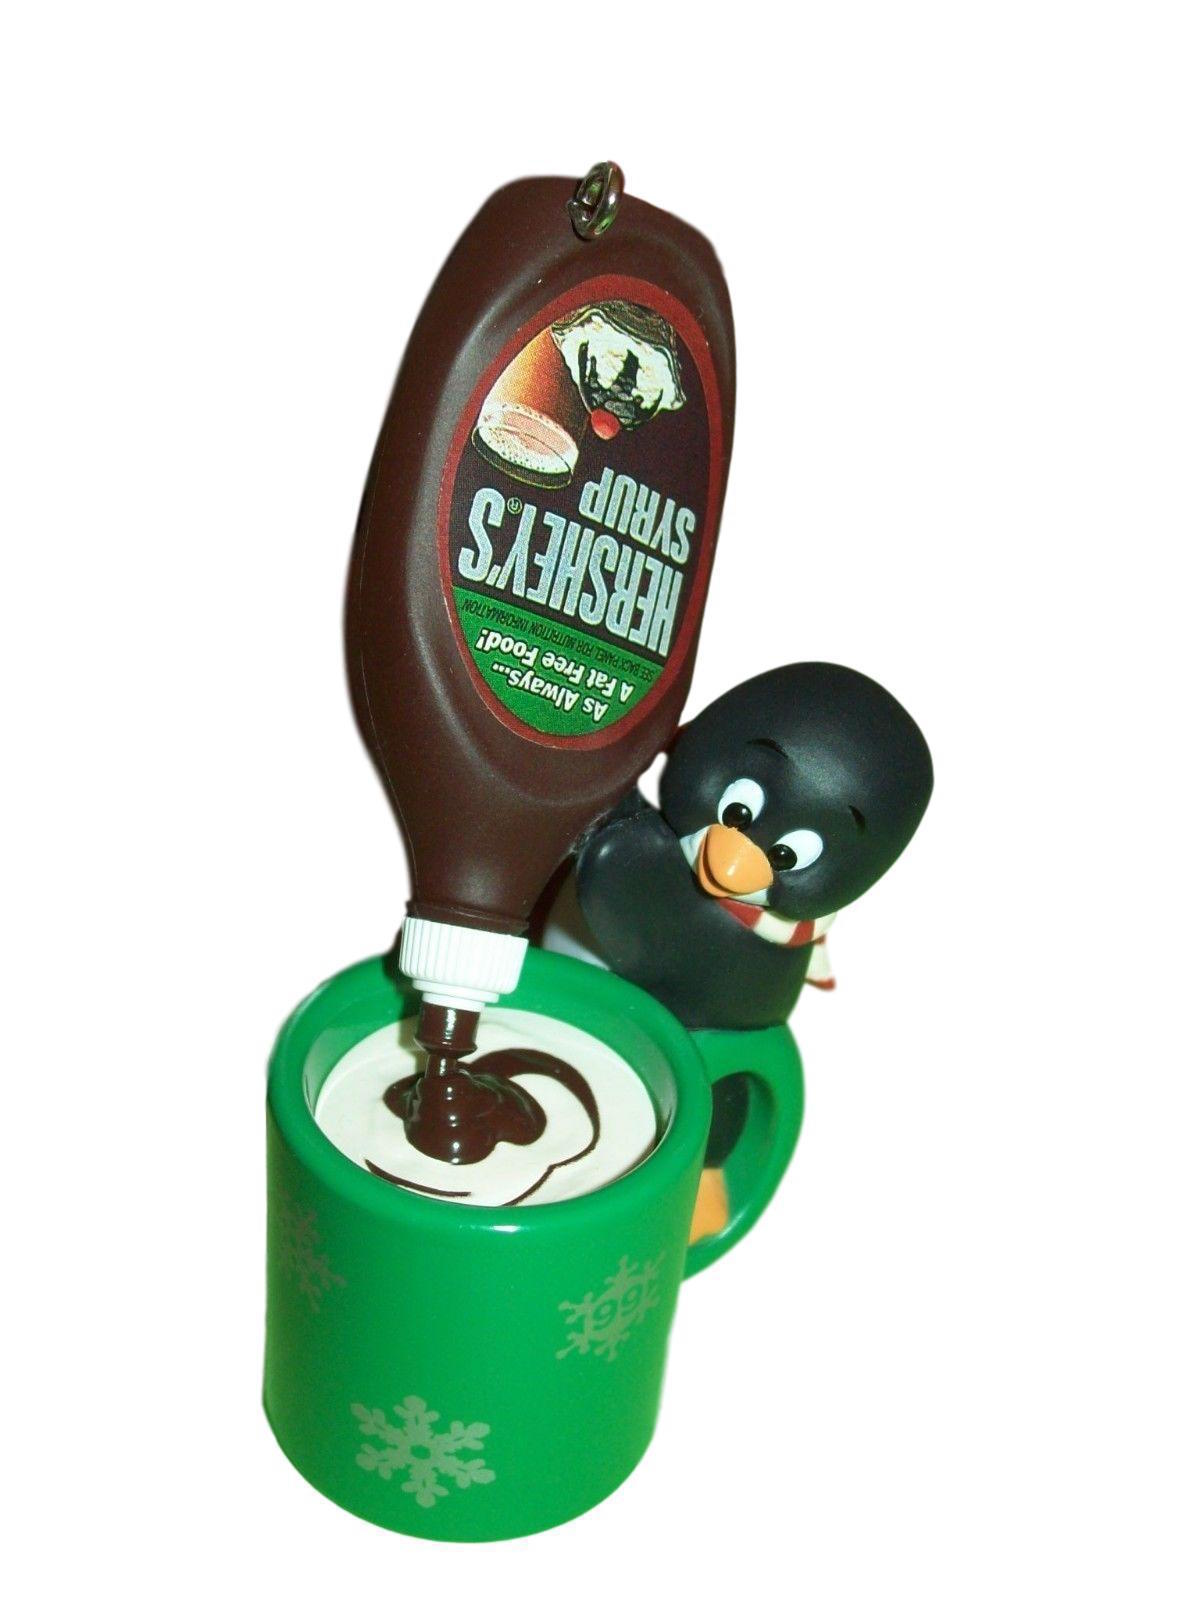 Primary image for Hallmark 1999 Cocoa Break Colorway Repaint Hersheys Syrup Green Mug Ornament